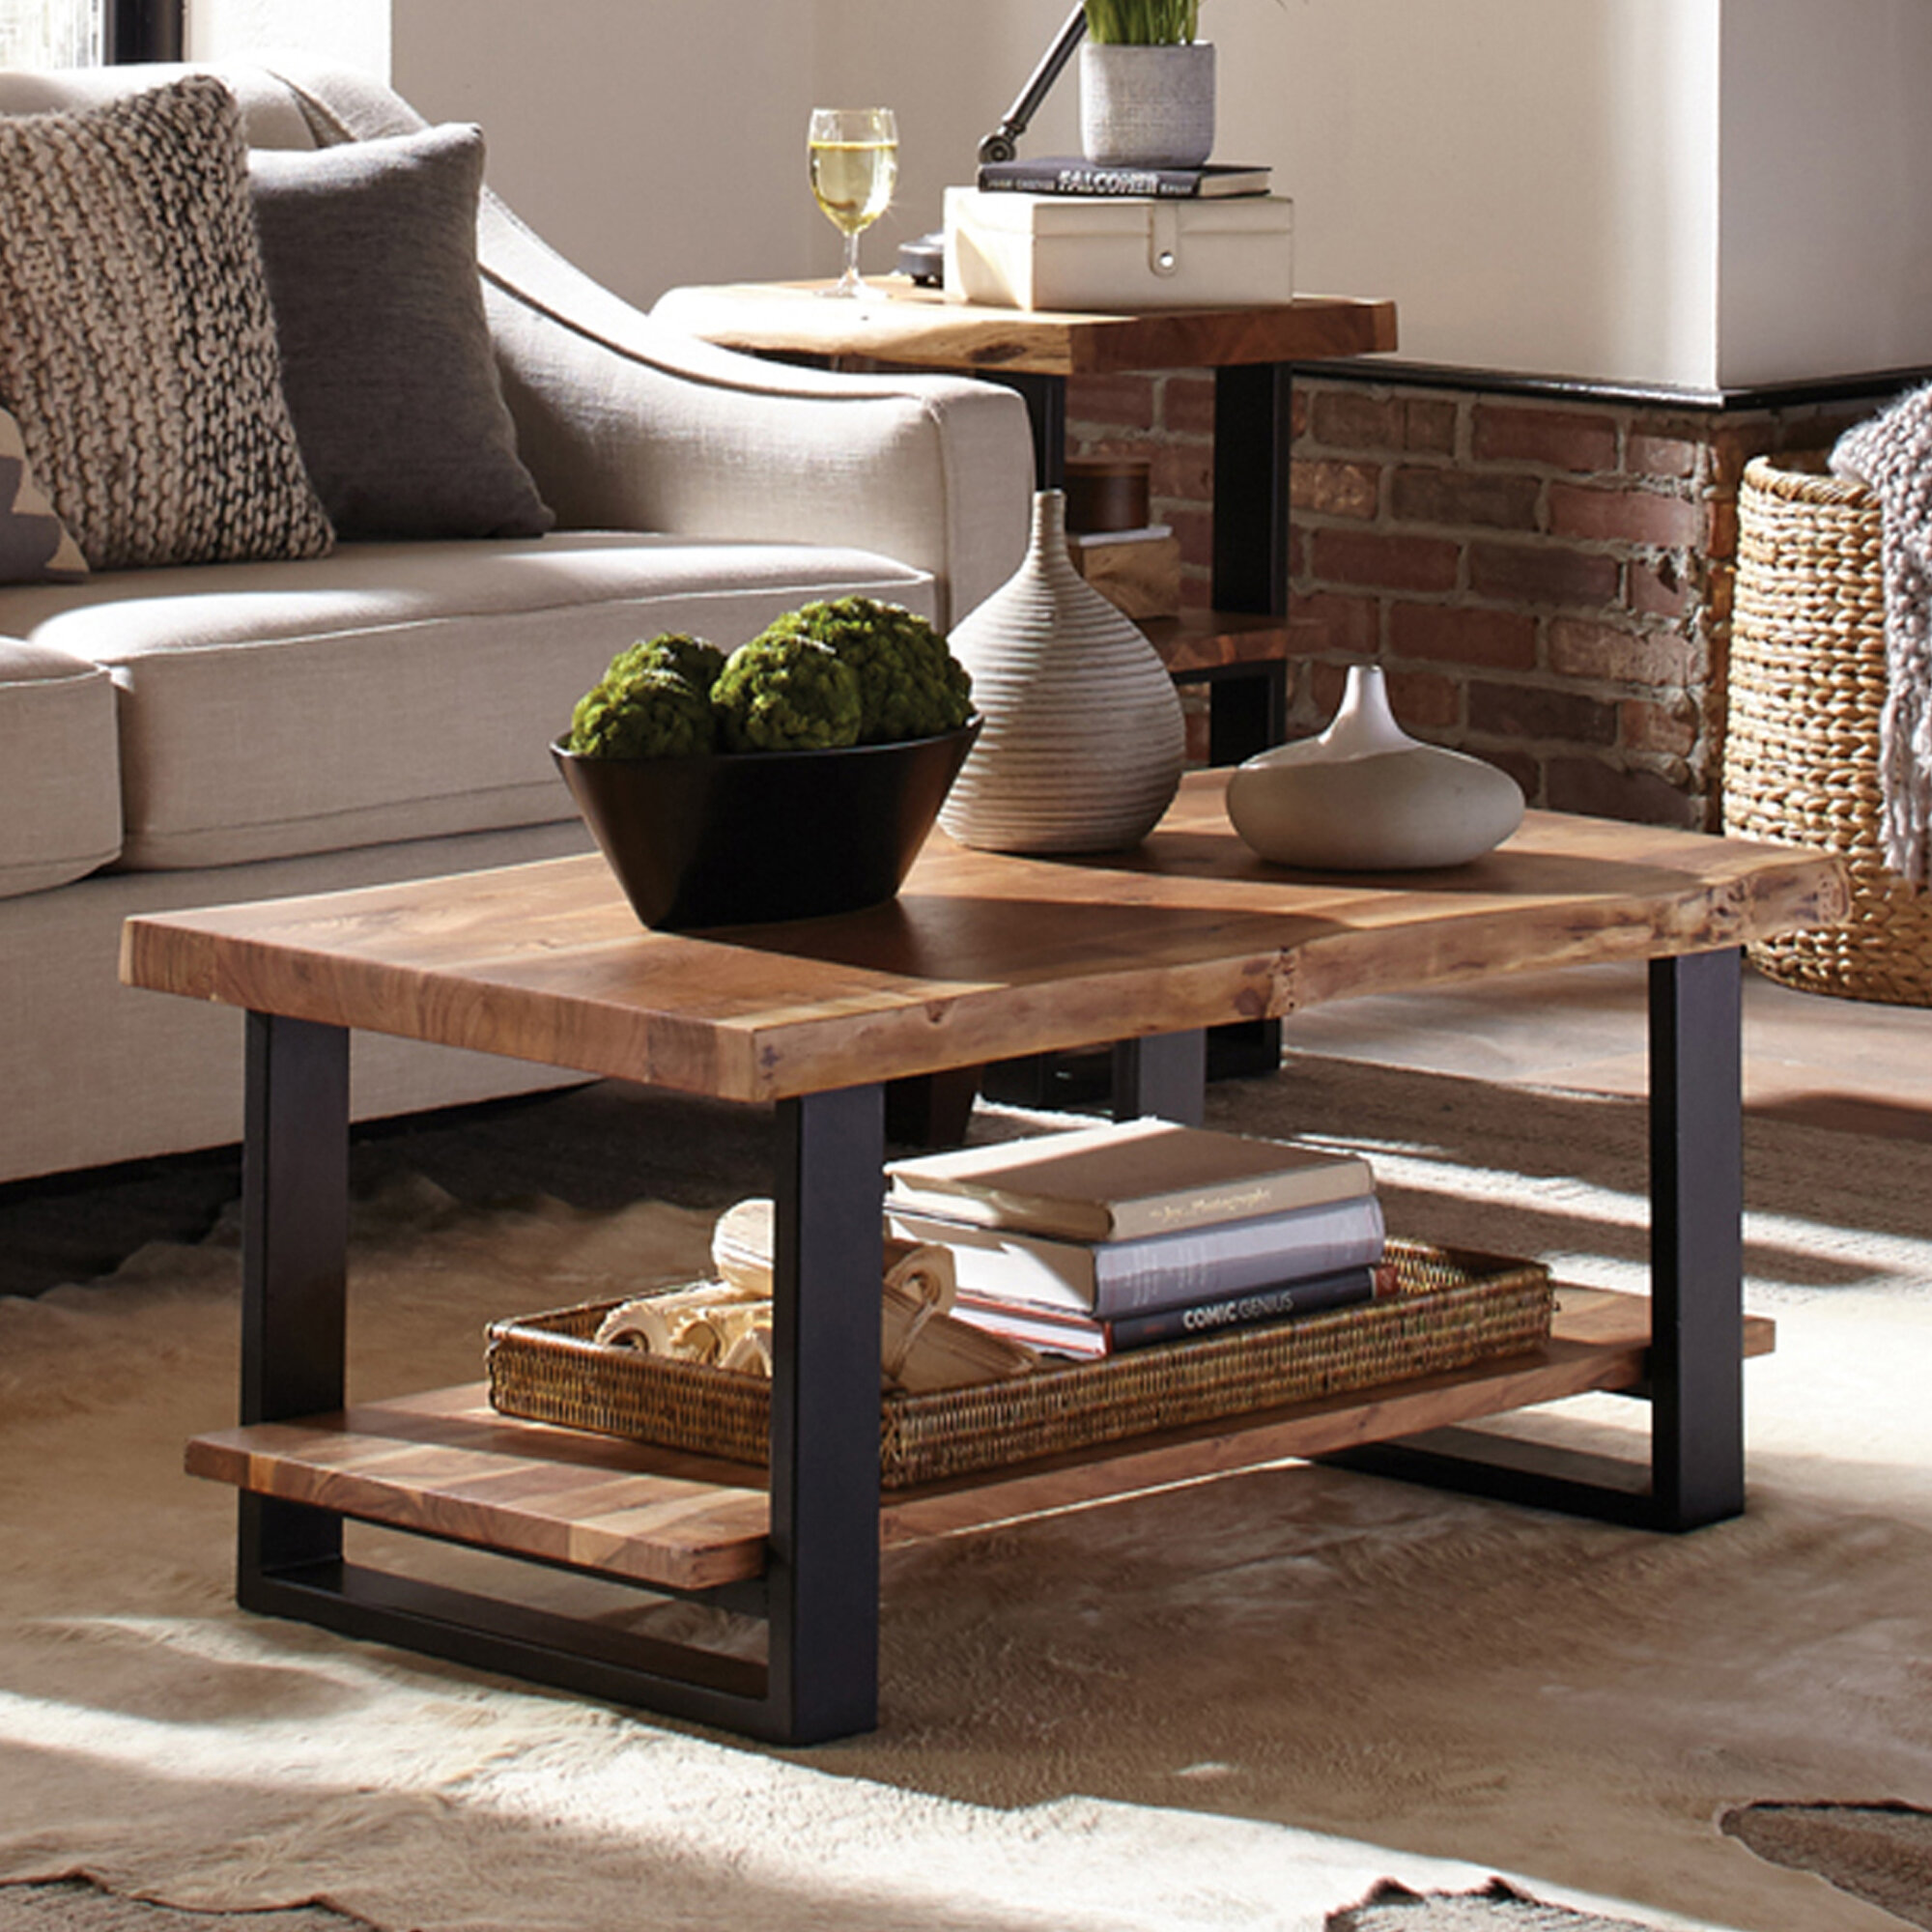 Live Edge Coffee Tables Free Shipping Over 35 Wayfair